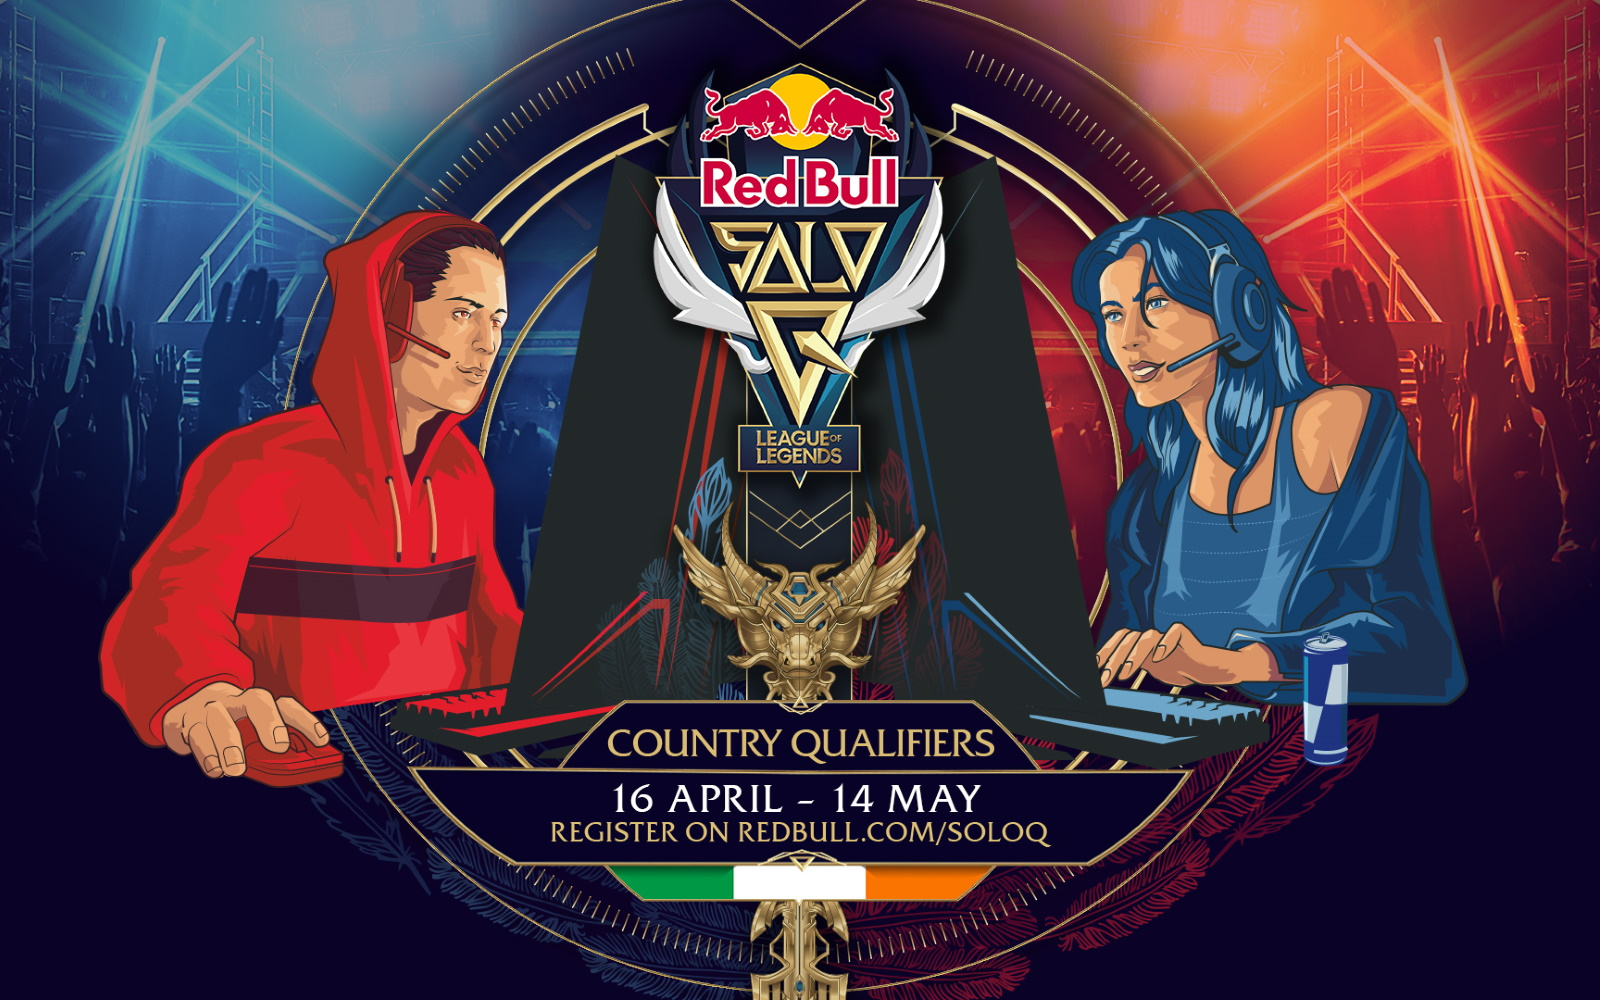 Live Stream Of Red Bull Solo Q League Of Legends Irish Qualifiers